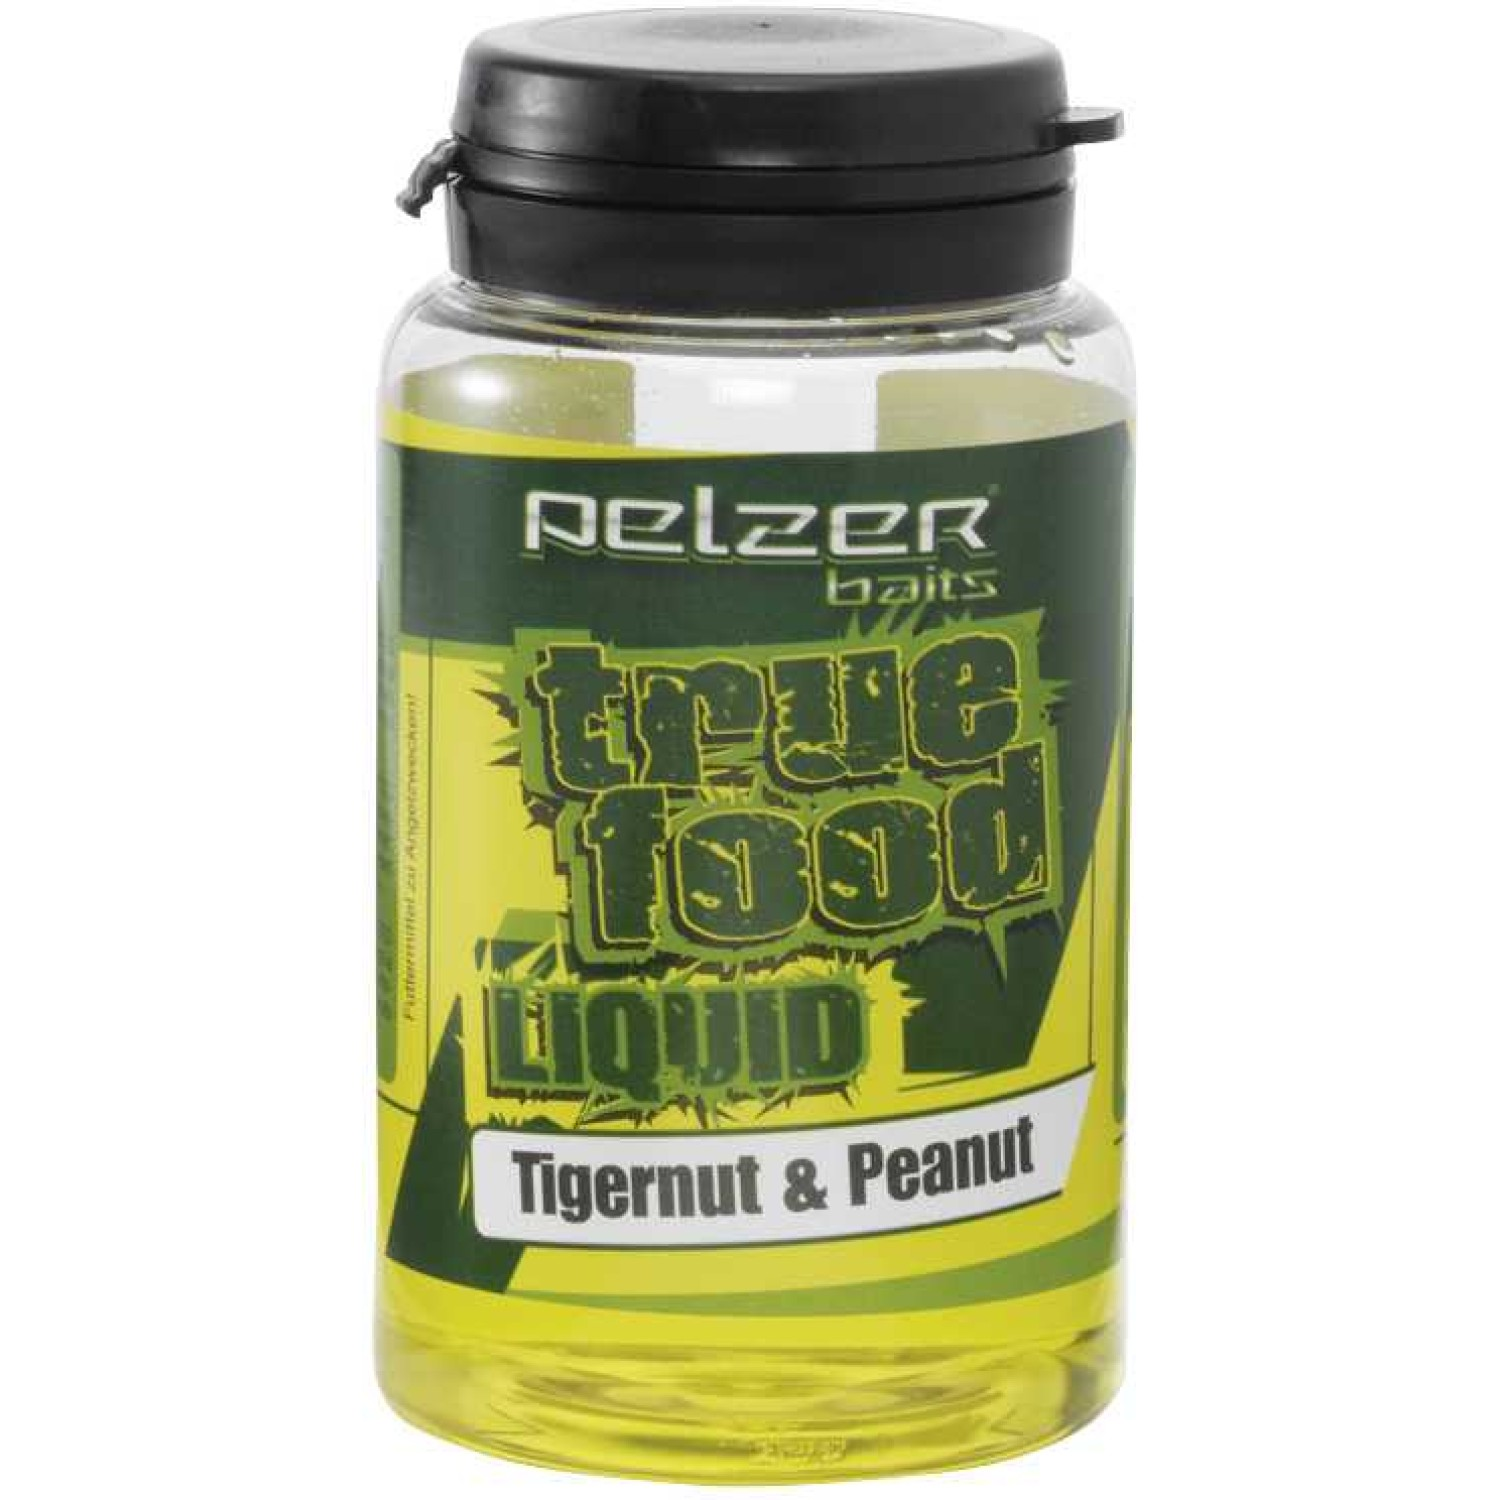 Pelzer True Food Liquid 125ml